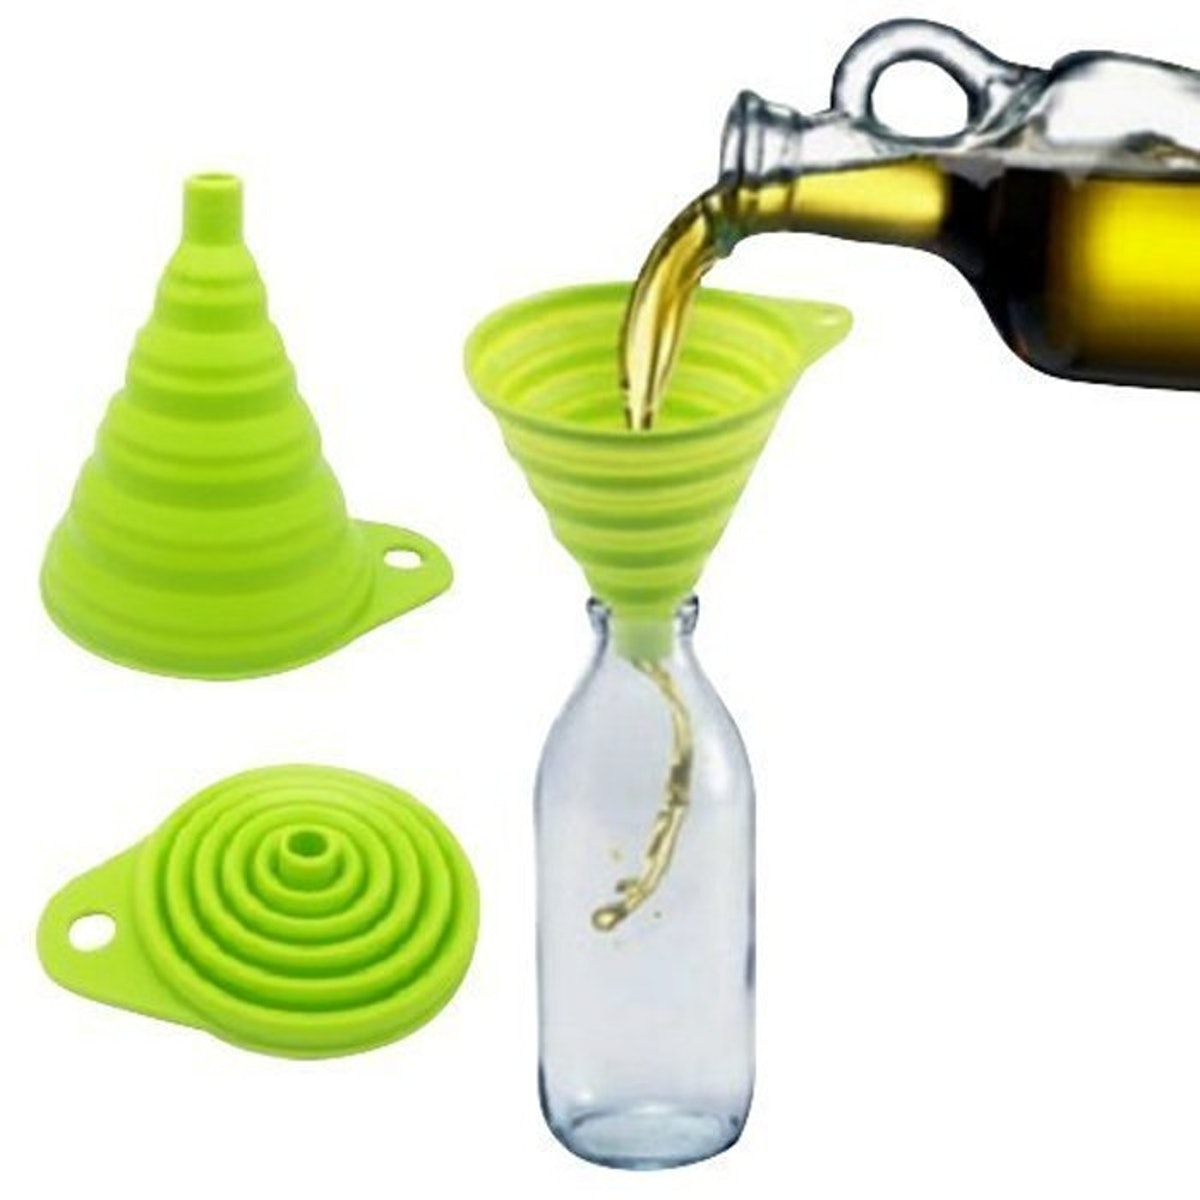 AxeSickle Collapsible Funnels (2 Pack)